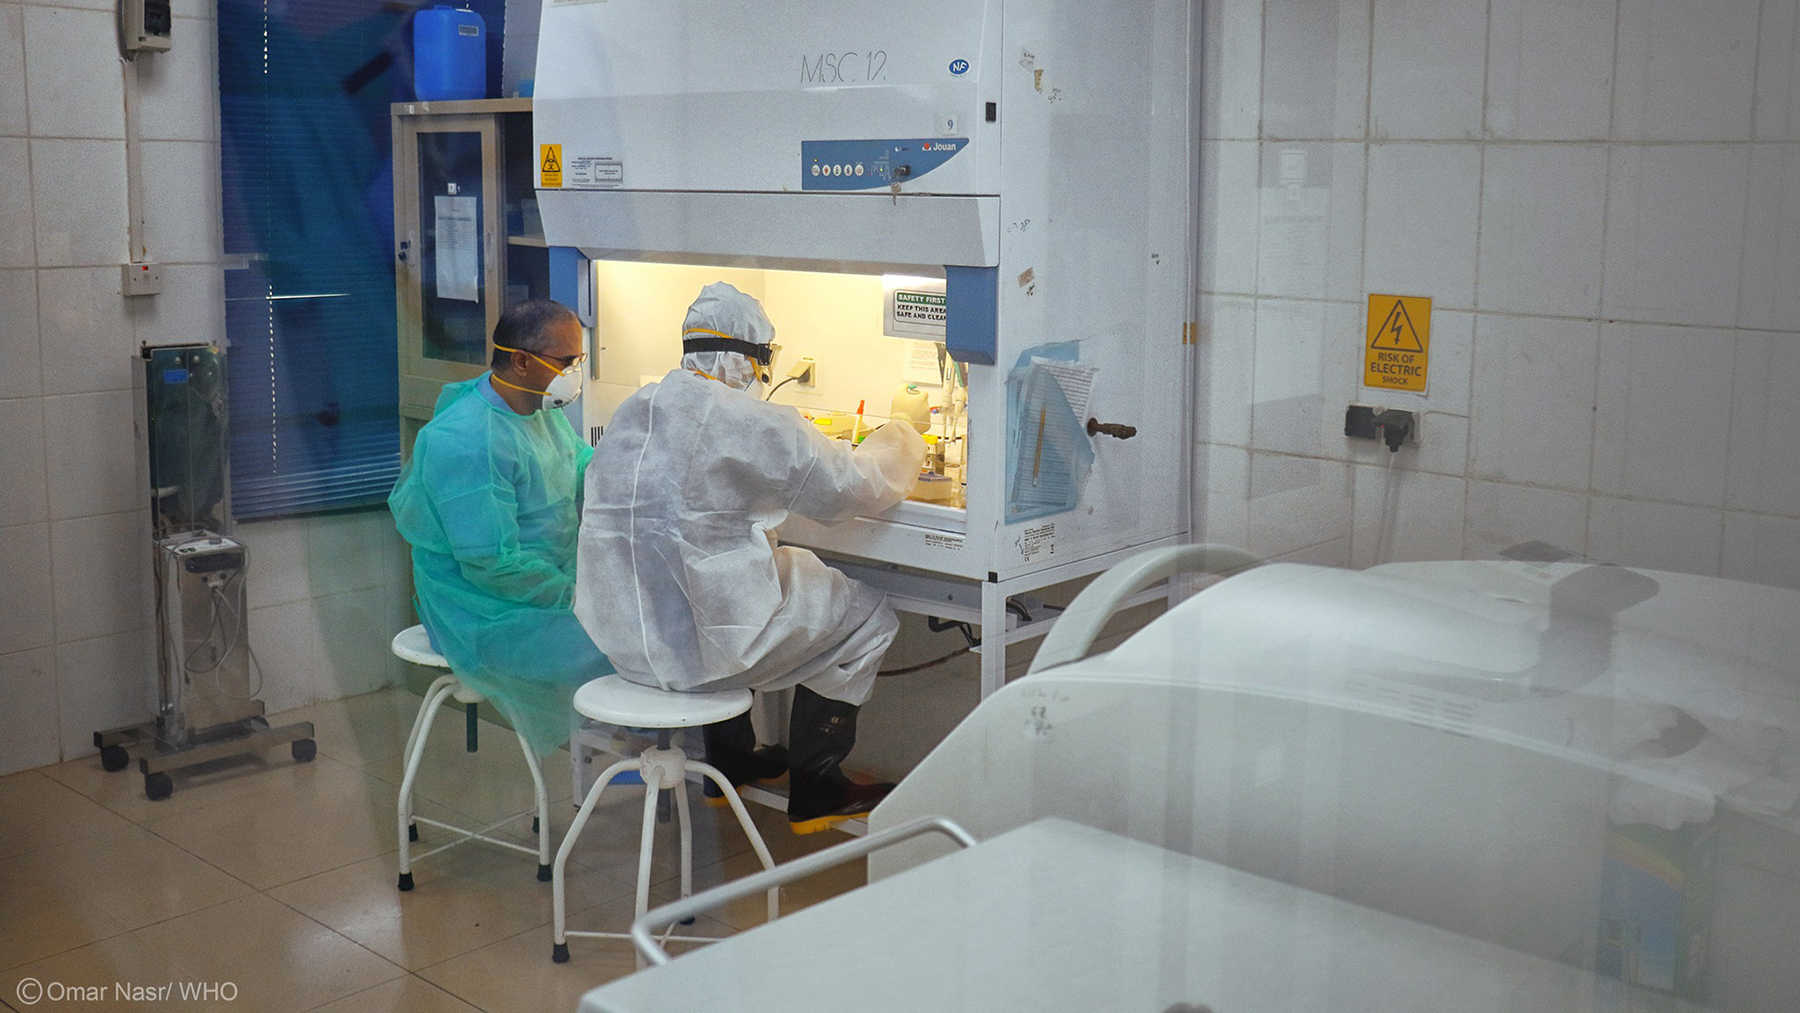 Health care workers conduct a laboratory test. (Photo courtesy of the World Health Organization)